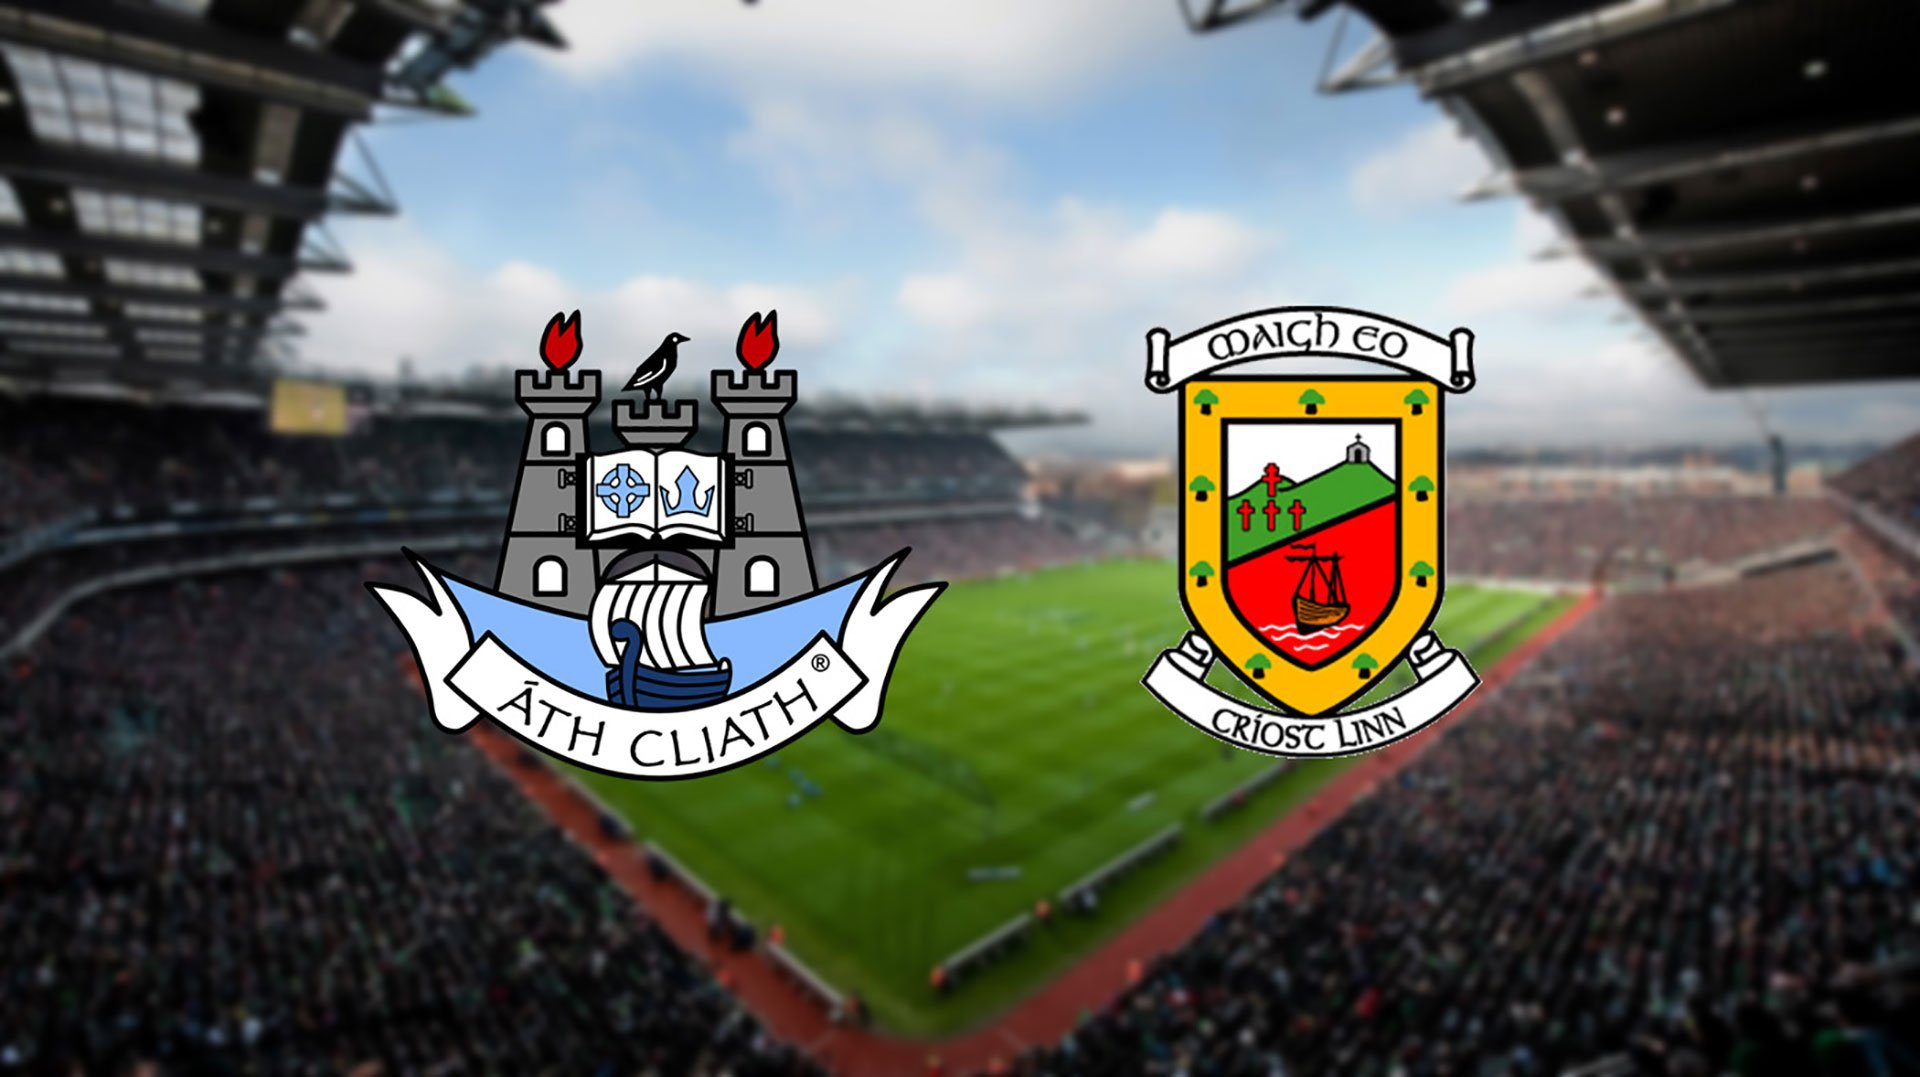 An article on predicting who will win the match between Dublin & Mayo